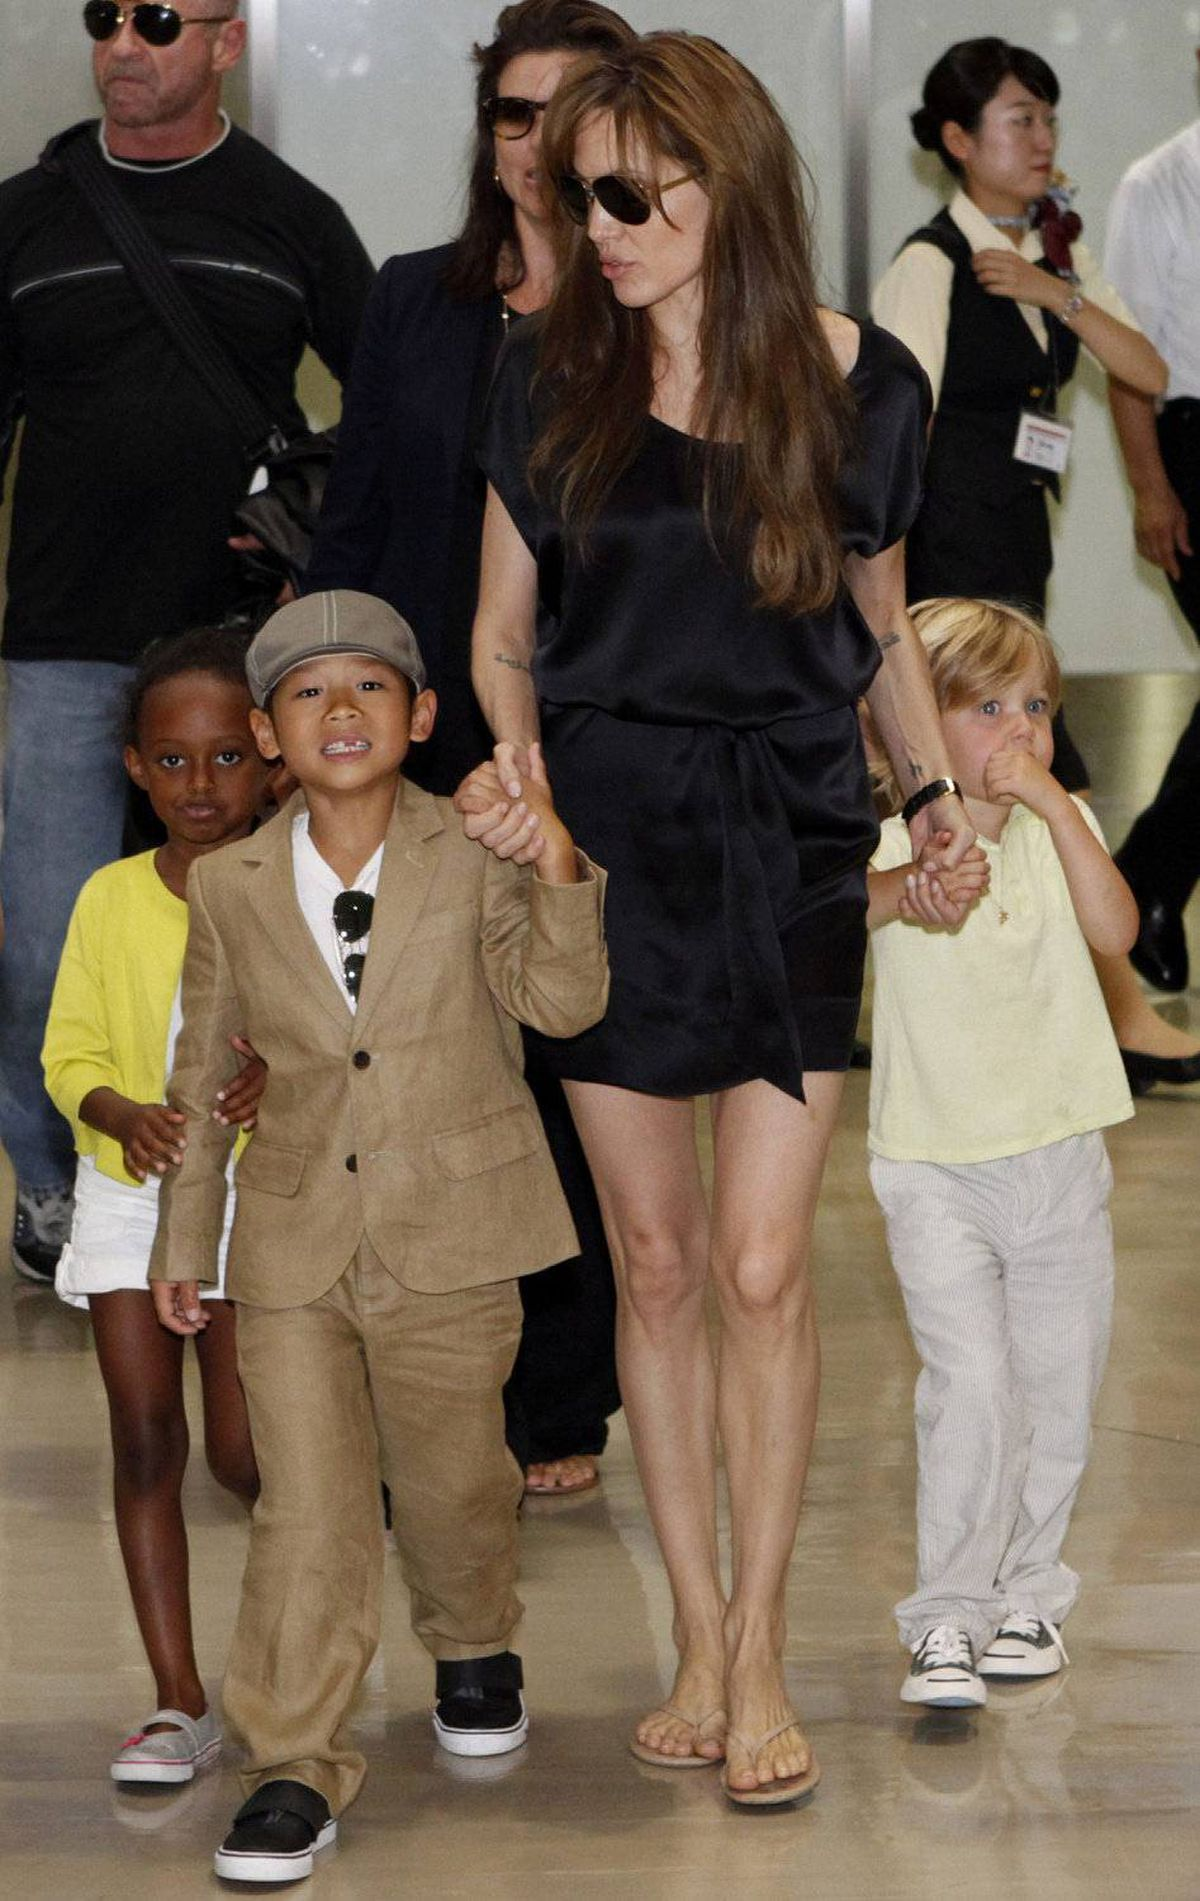 ANGELINA JOLIE 'I will never be as good a mother as [my mother] was. I will try my best, but I don't think I could ever be. She was - she was just grace incarnate. She was the most generous, loving - she's better than me.' Source: 60 Minutes